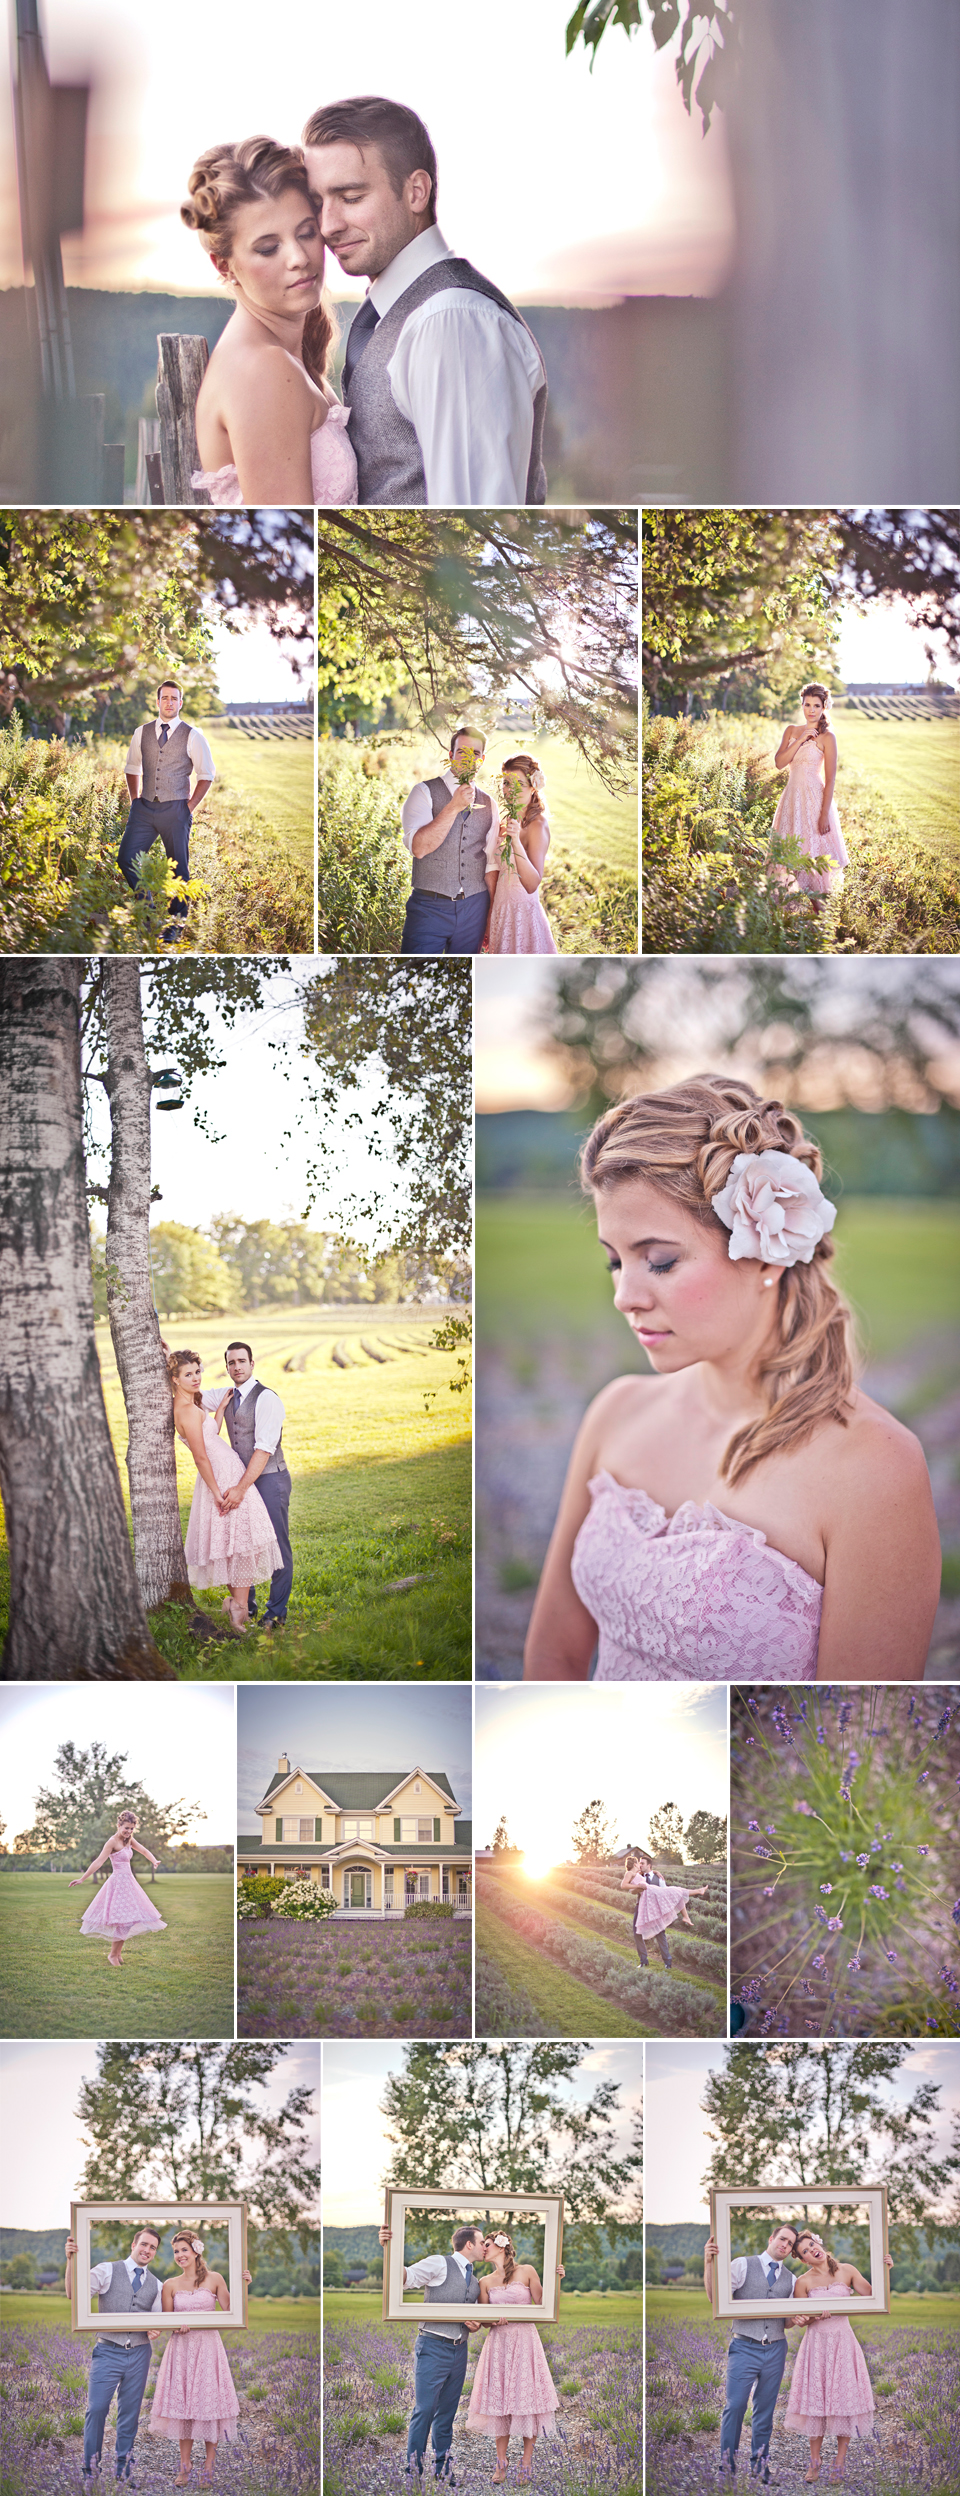 Montreal Wedding Photographer   Lavender Fields Stanstead Quebec   LMP wedding photography and videography